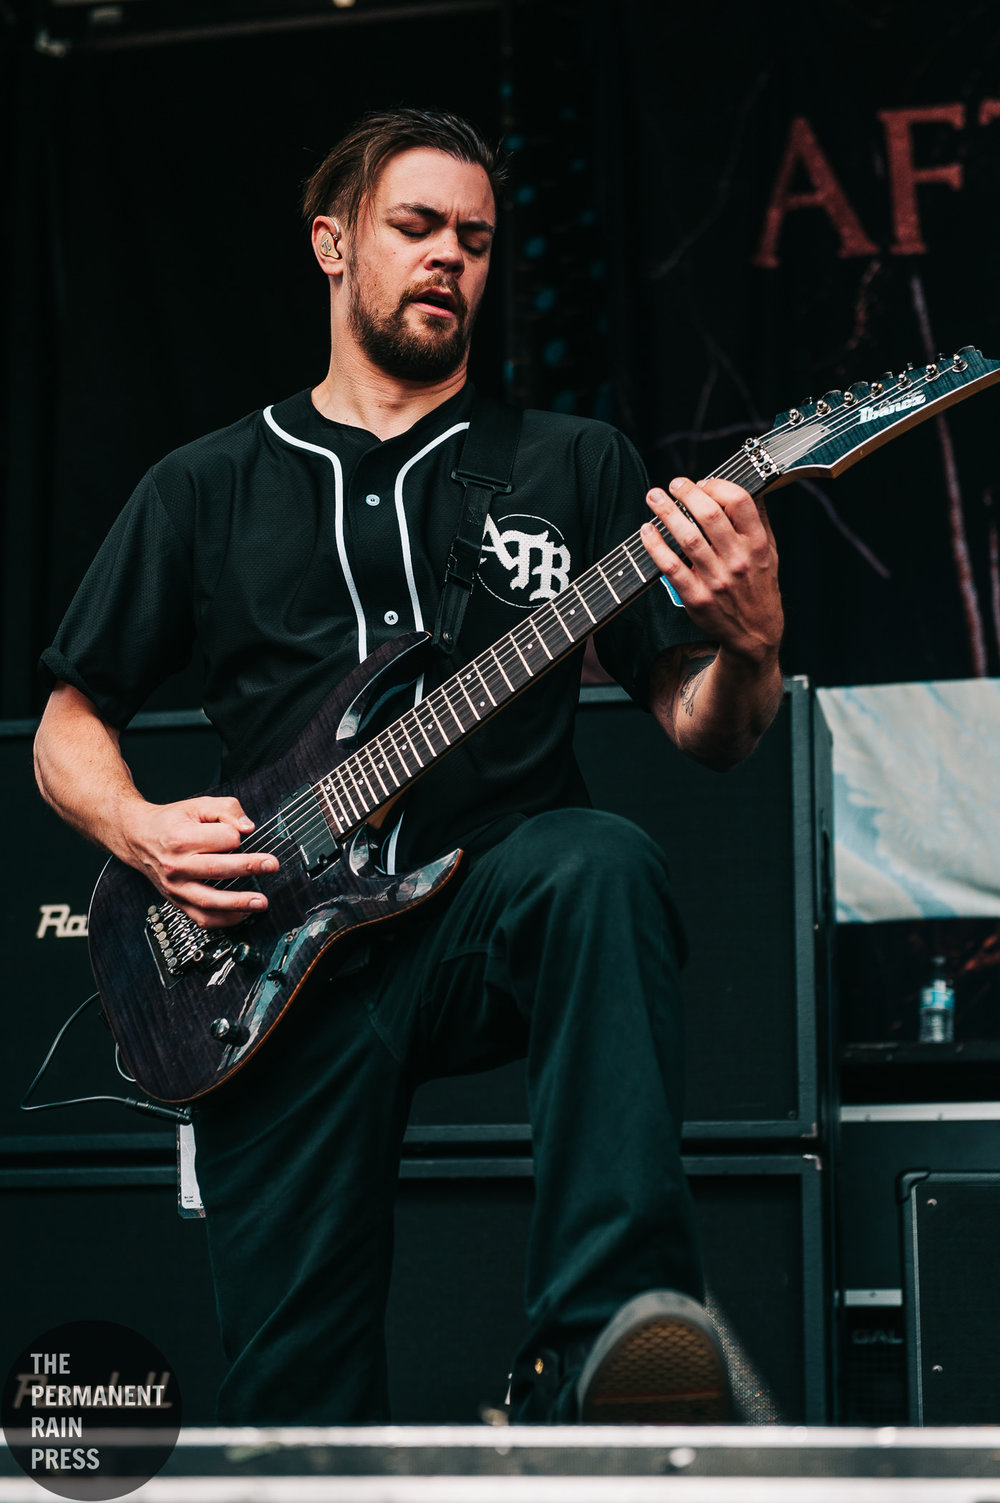 15_After_The_Burial-Vans_Warped_Tour-20170616 (3 of 14).jpg